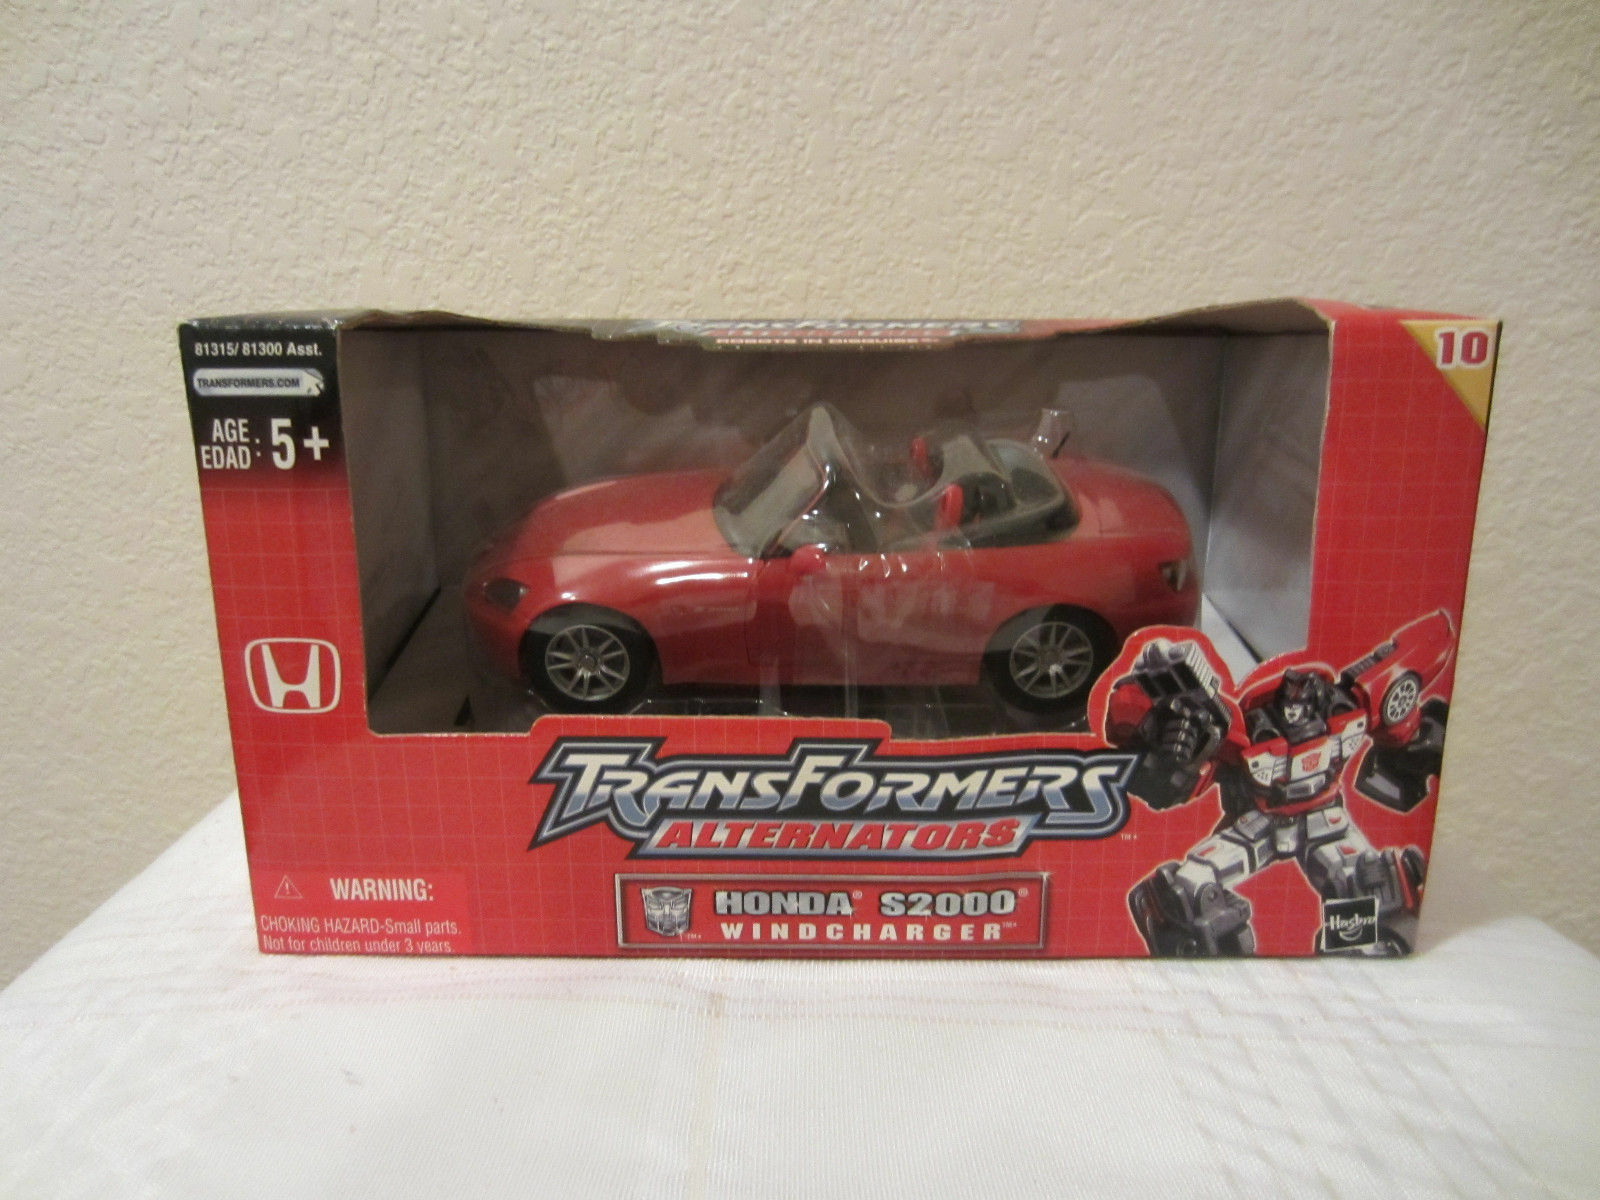 Transformers RID Alternators Honda S2000 Windcharger Vehicle to Robot 2004 New